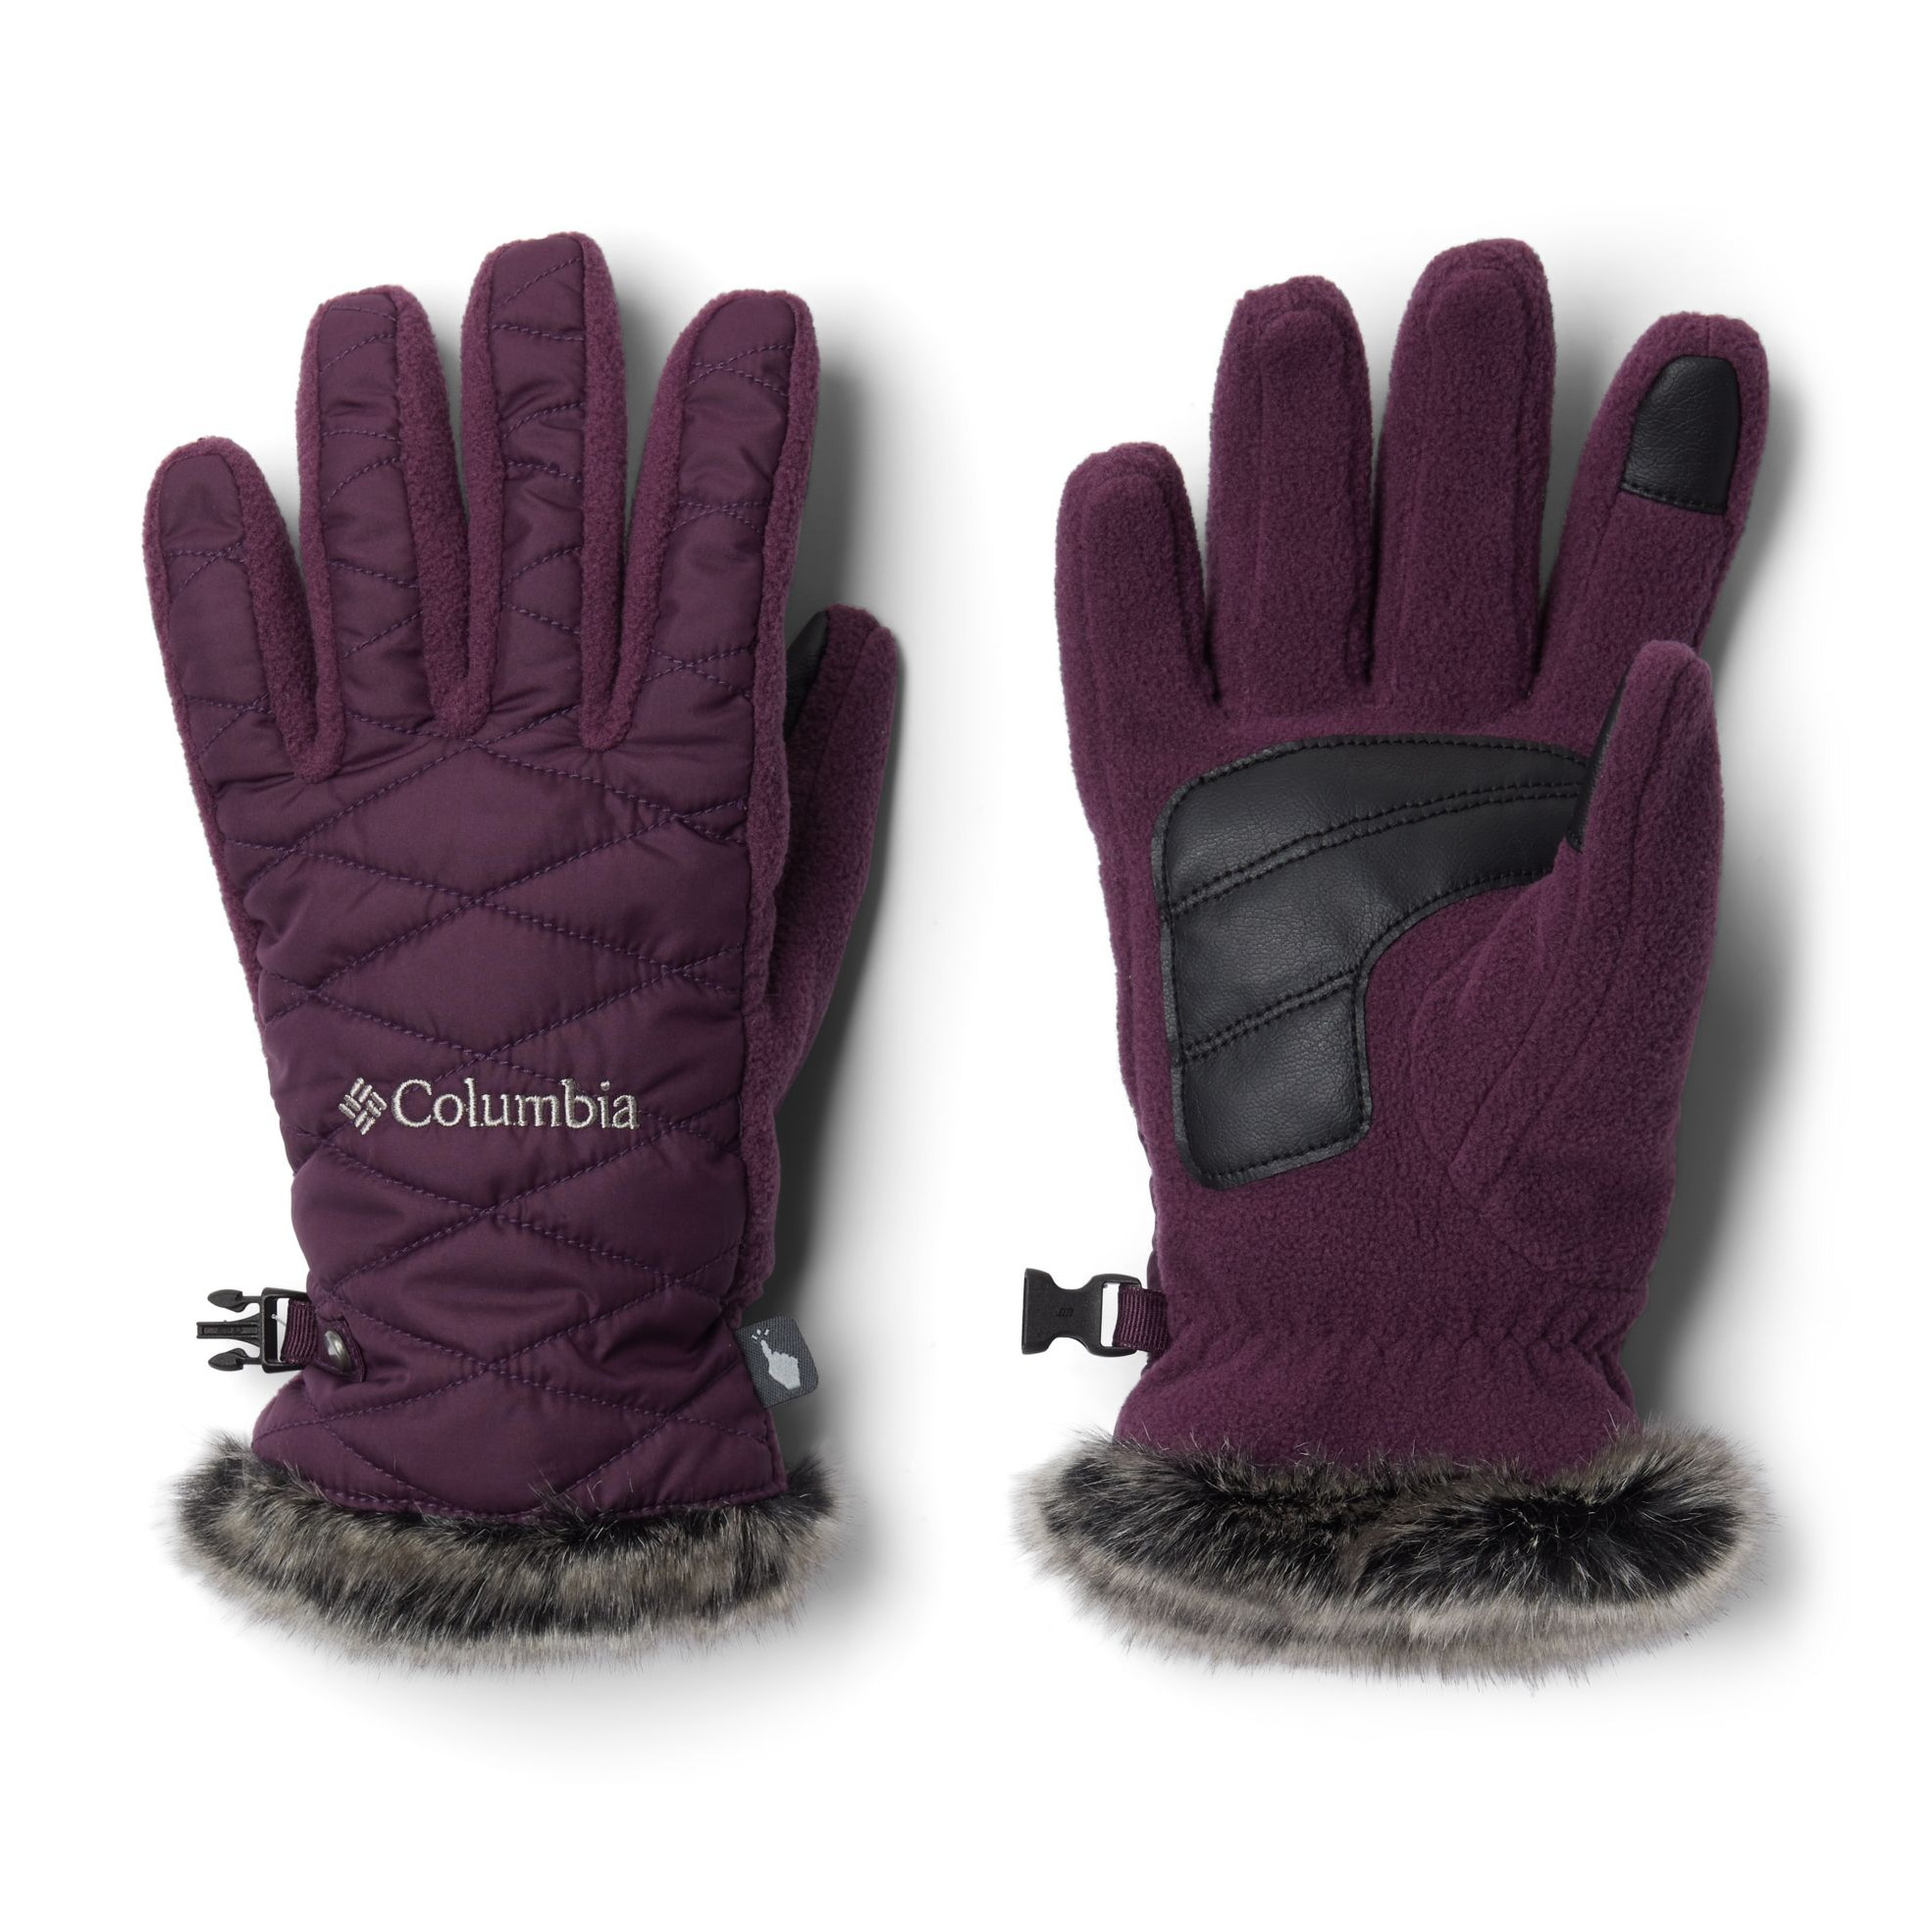 Heavenly II Glove - Women's